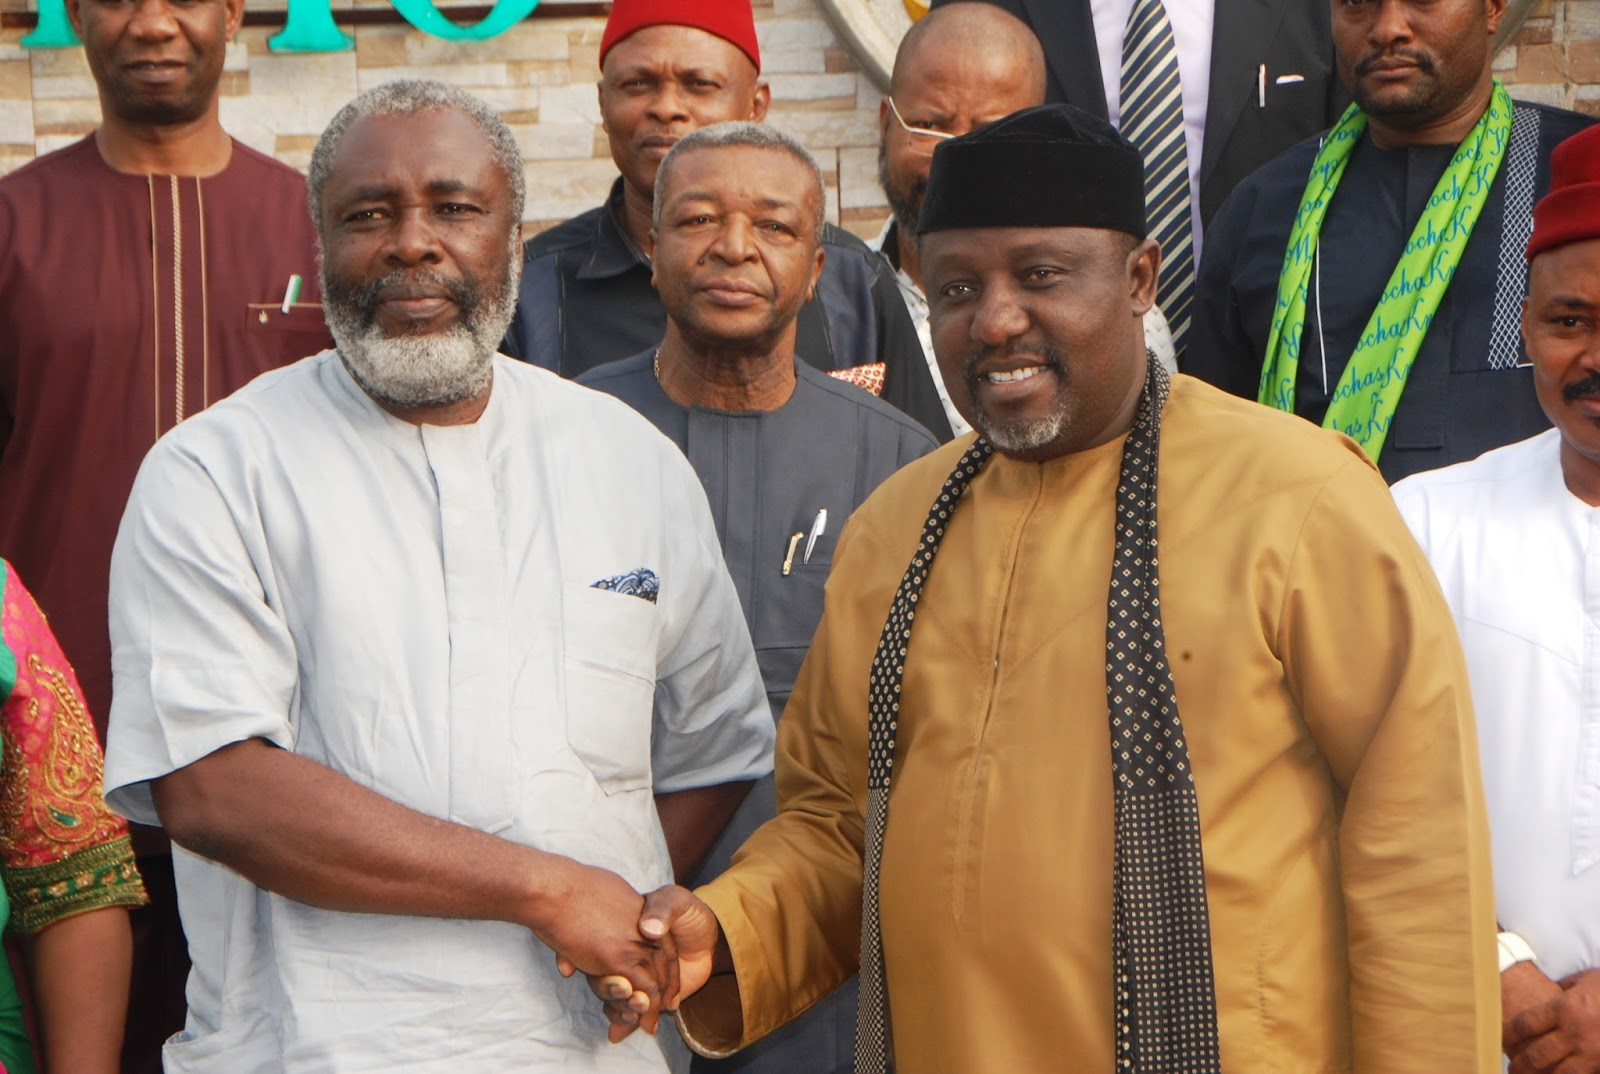 Governor Rochas Okorocha in a handshake with the President-General of Ohaneze Ndi-Igbo,Chief Gray Nnachi Enwo-Igariwey, whe he visited the Governor at the Government House. Owerri recently